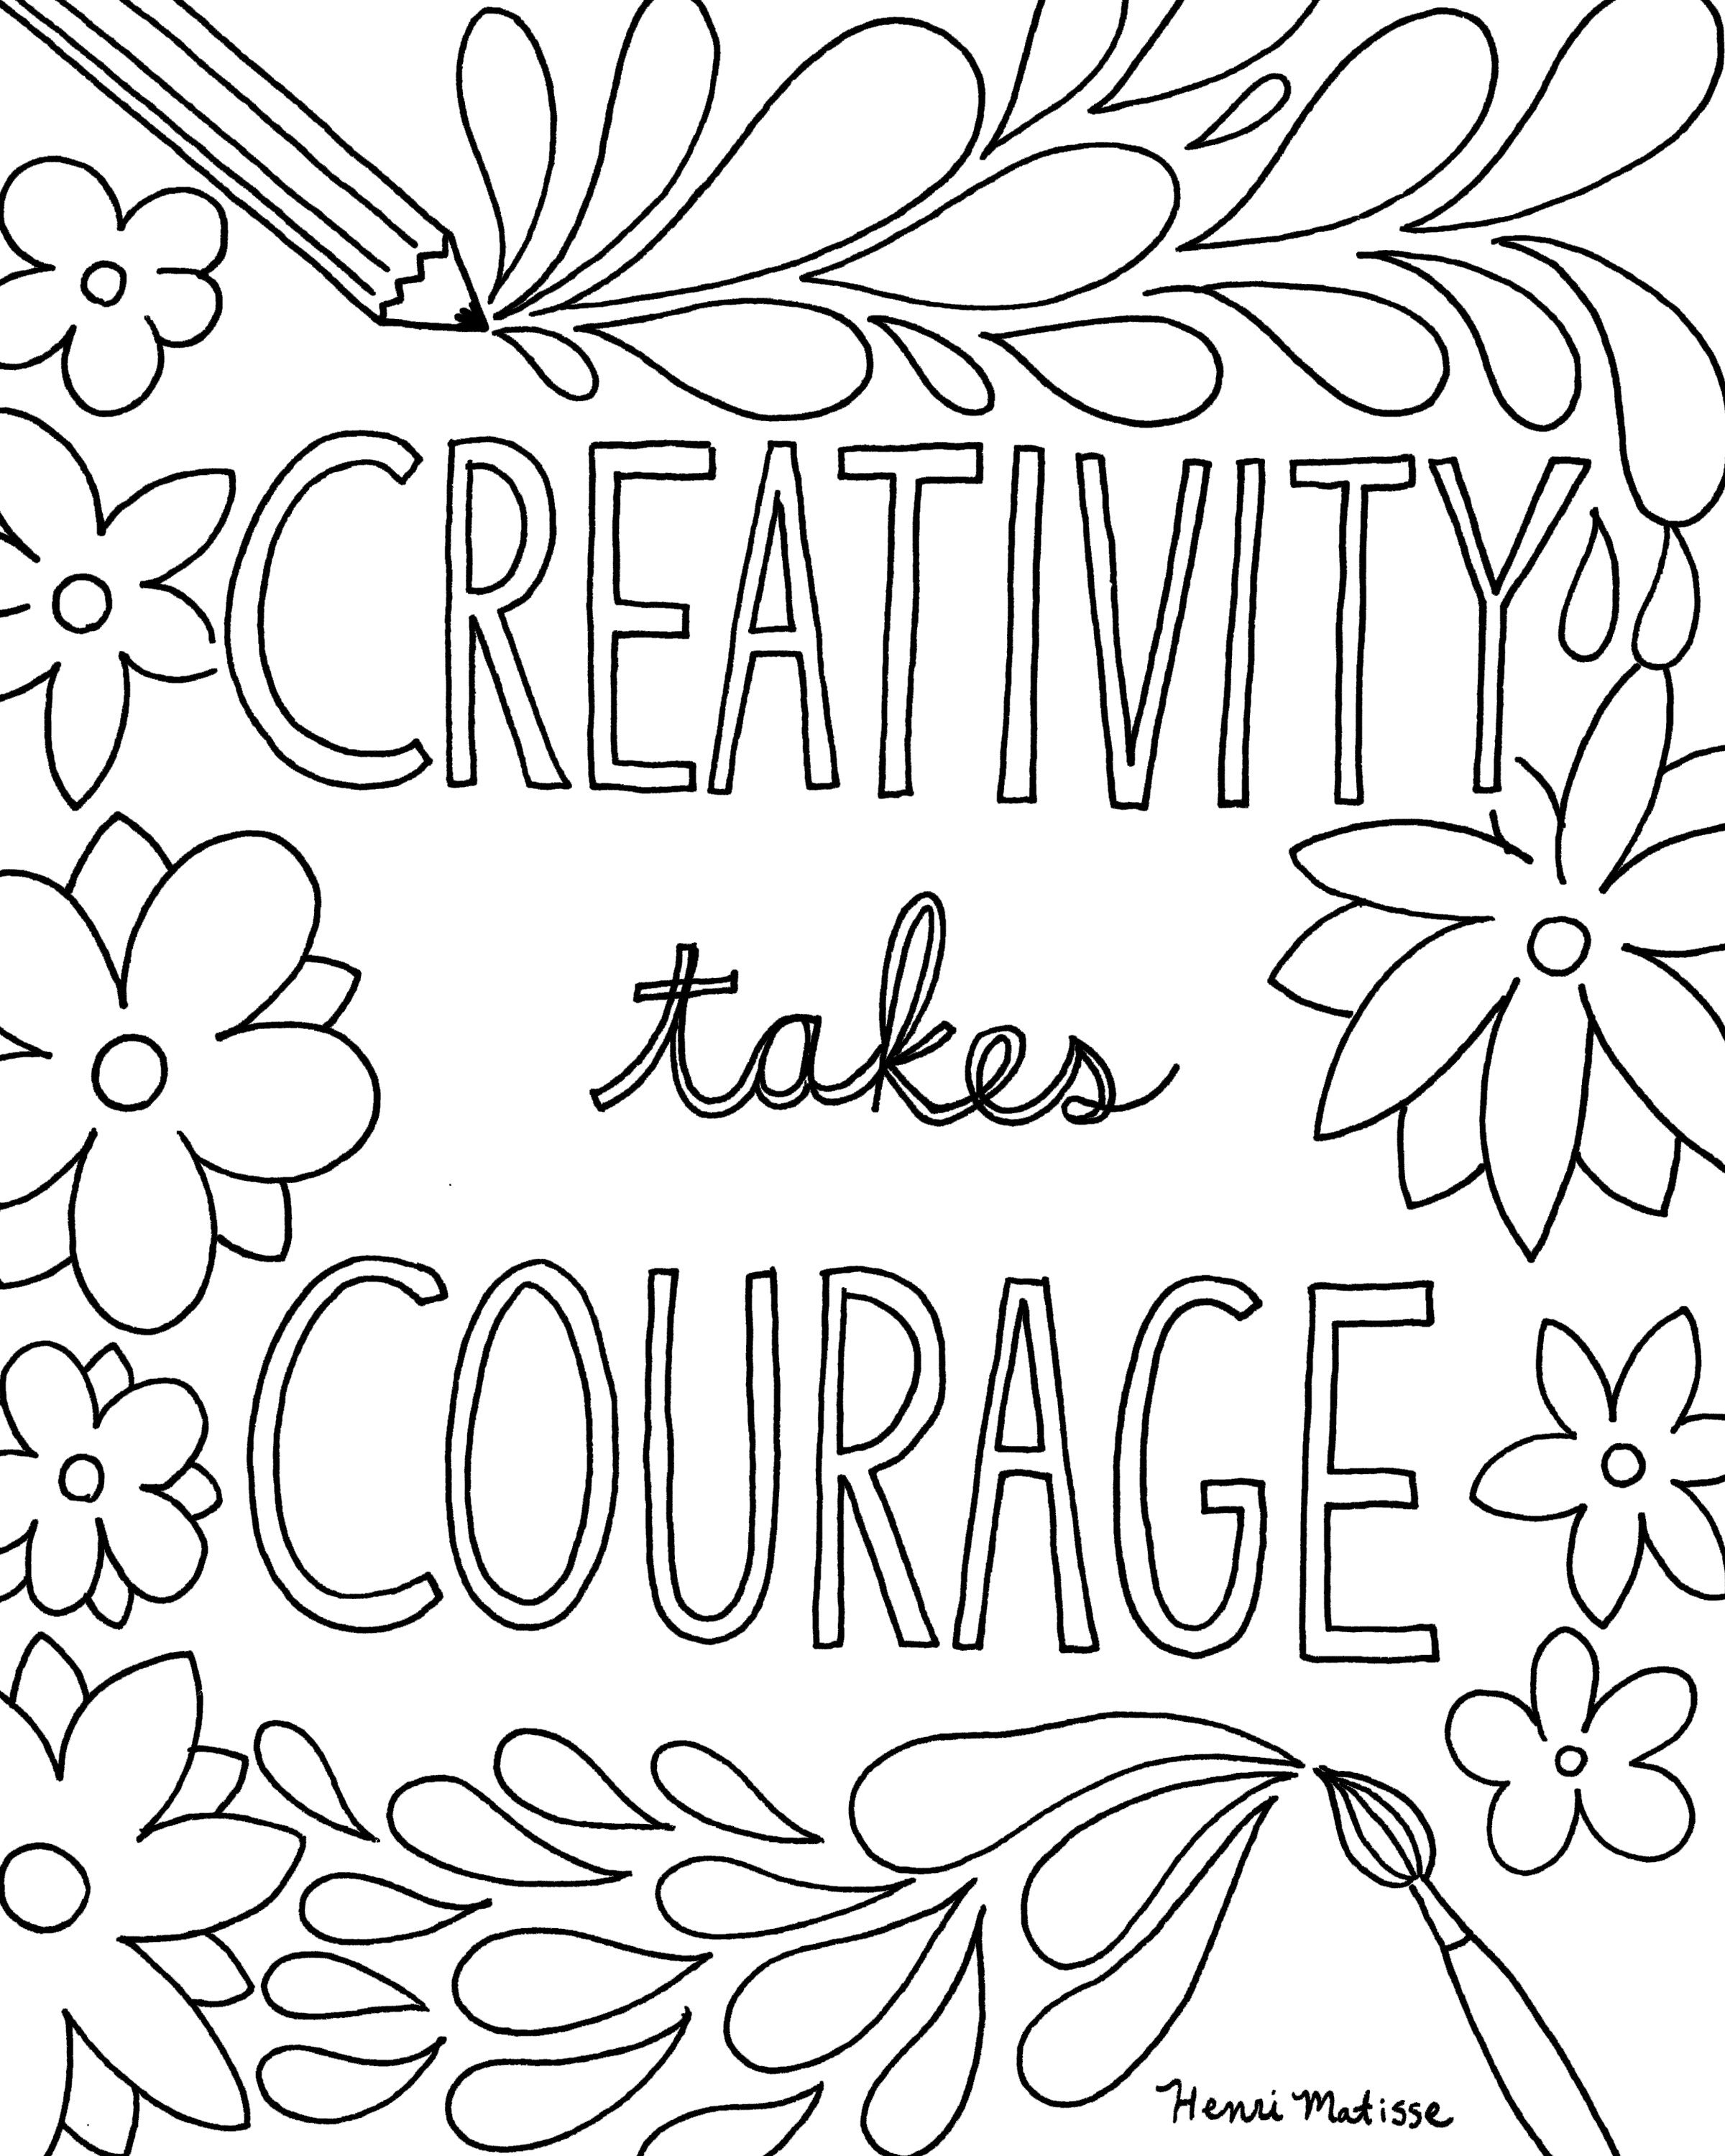 Positive Quotes Coloring Pages : positive, quotes, coloring, pages, Craftsy.com, Express, Creativity!, Quote, Coloring, Pages,, Inspirational, Quotes, Coloring,, Pages, Grown